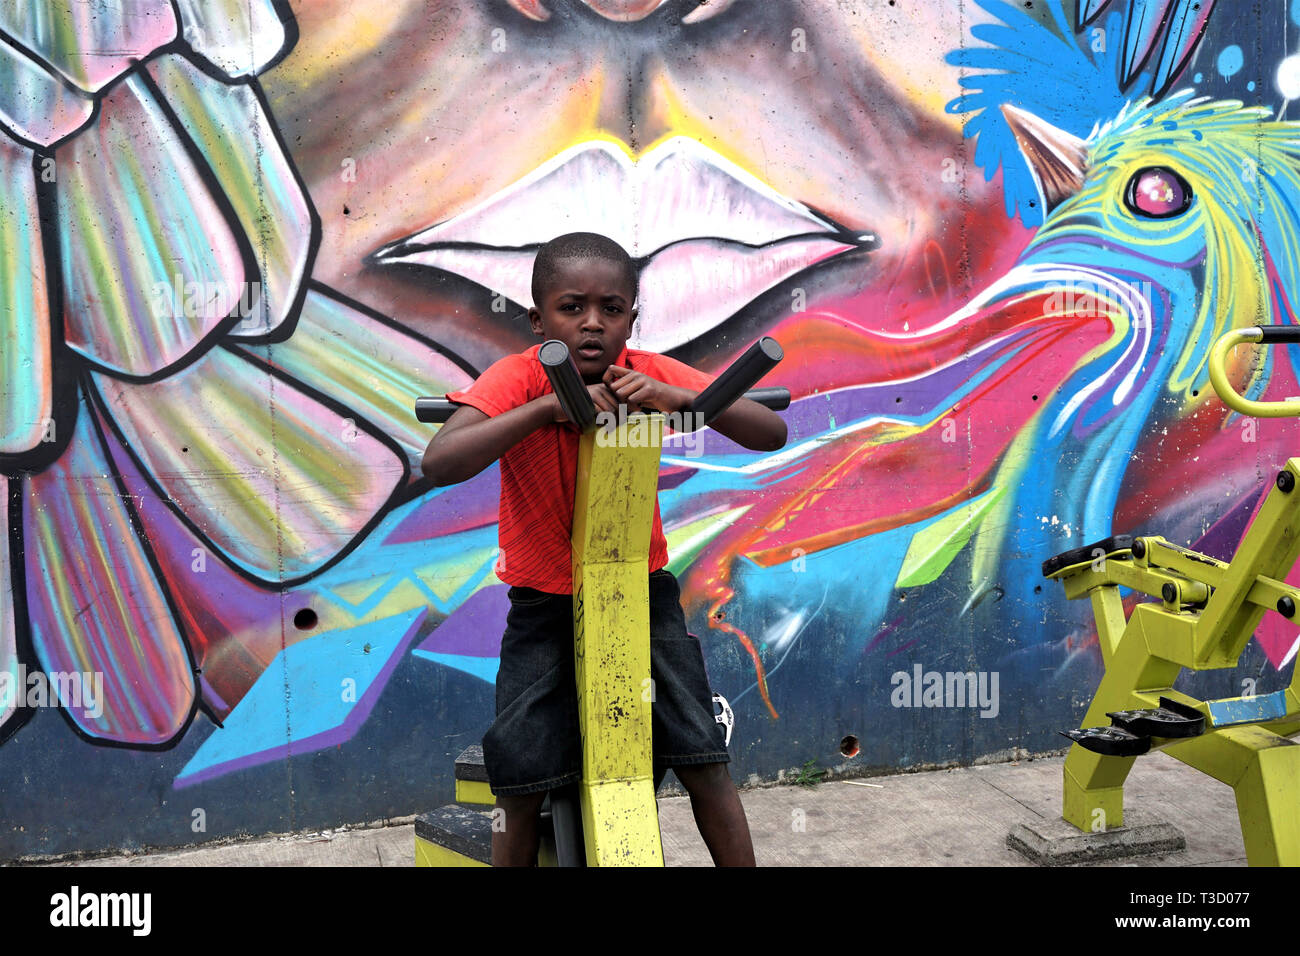 Young Boy on an Outdoor Exercise Machine in Front of a Colorful Mural in Comuna 13, Medellin, Columbia Stock Photo